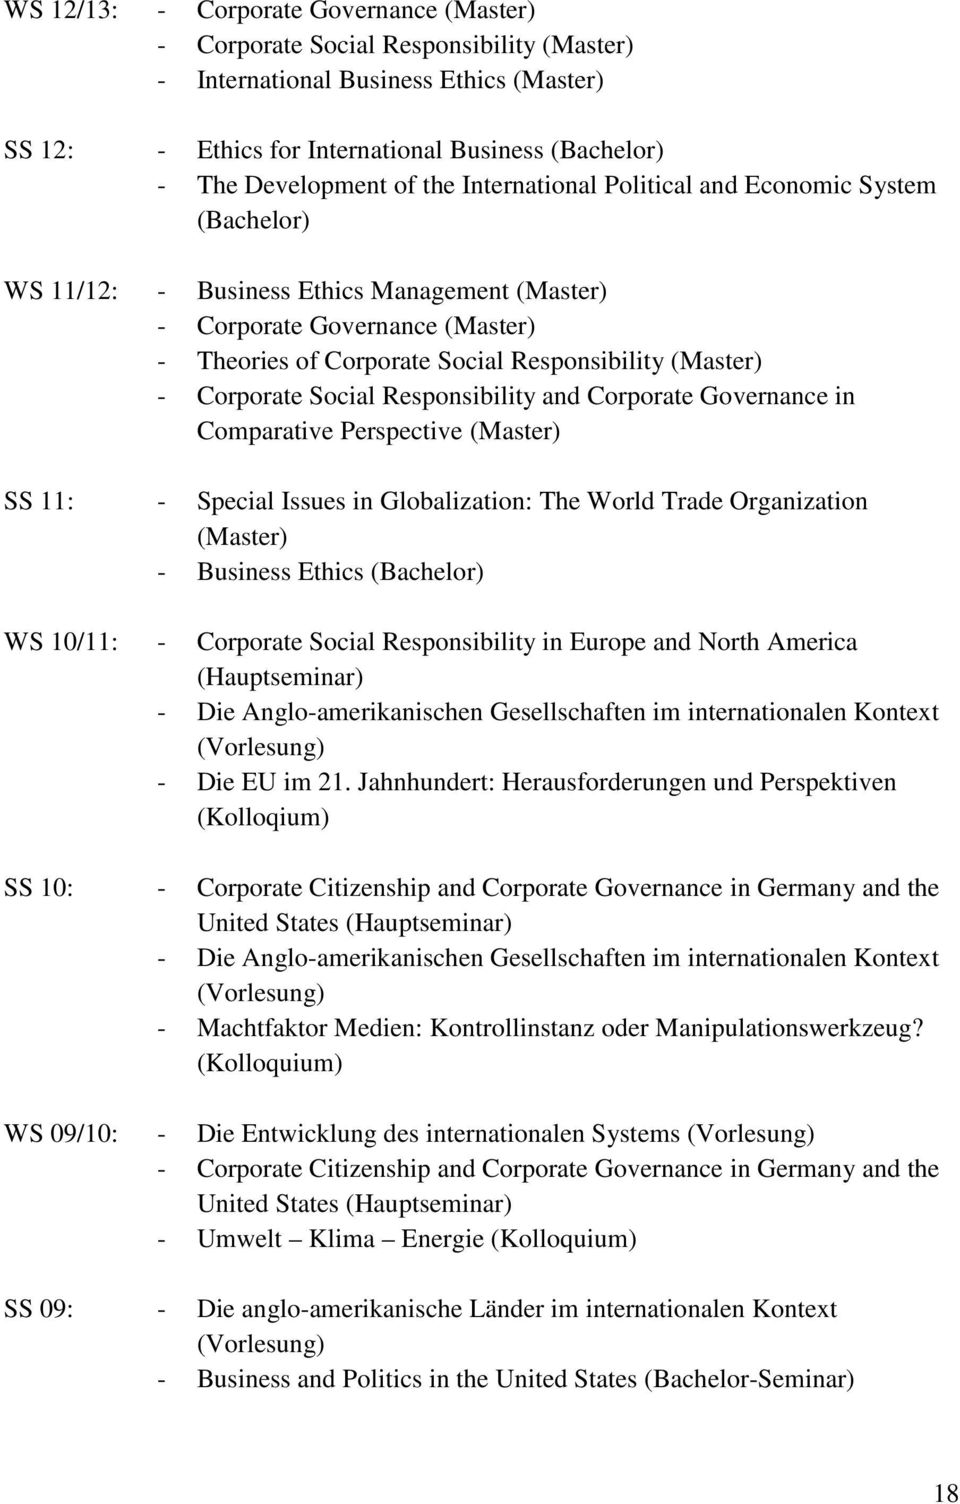 Corporate Social Responsibility and Corporate Governance in Comparative Perspective (Master) SS 11: - Special Issues in Globalization: The World Trade Organization (Master) - Business Ethics